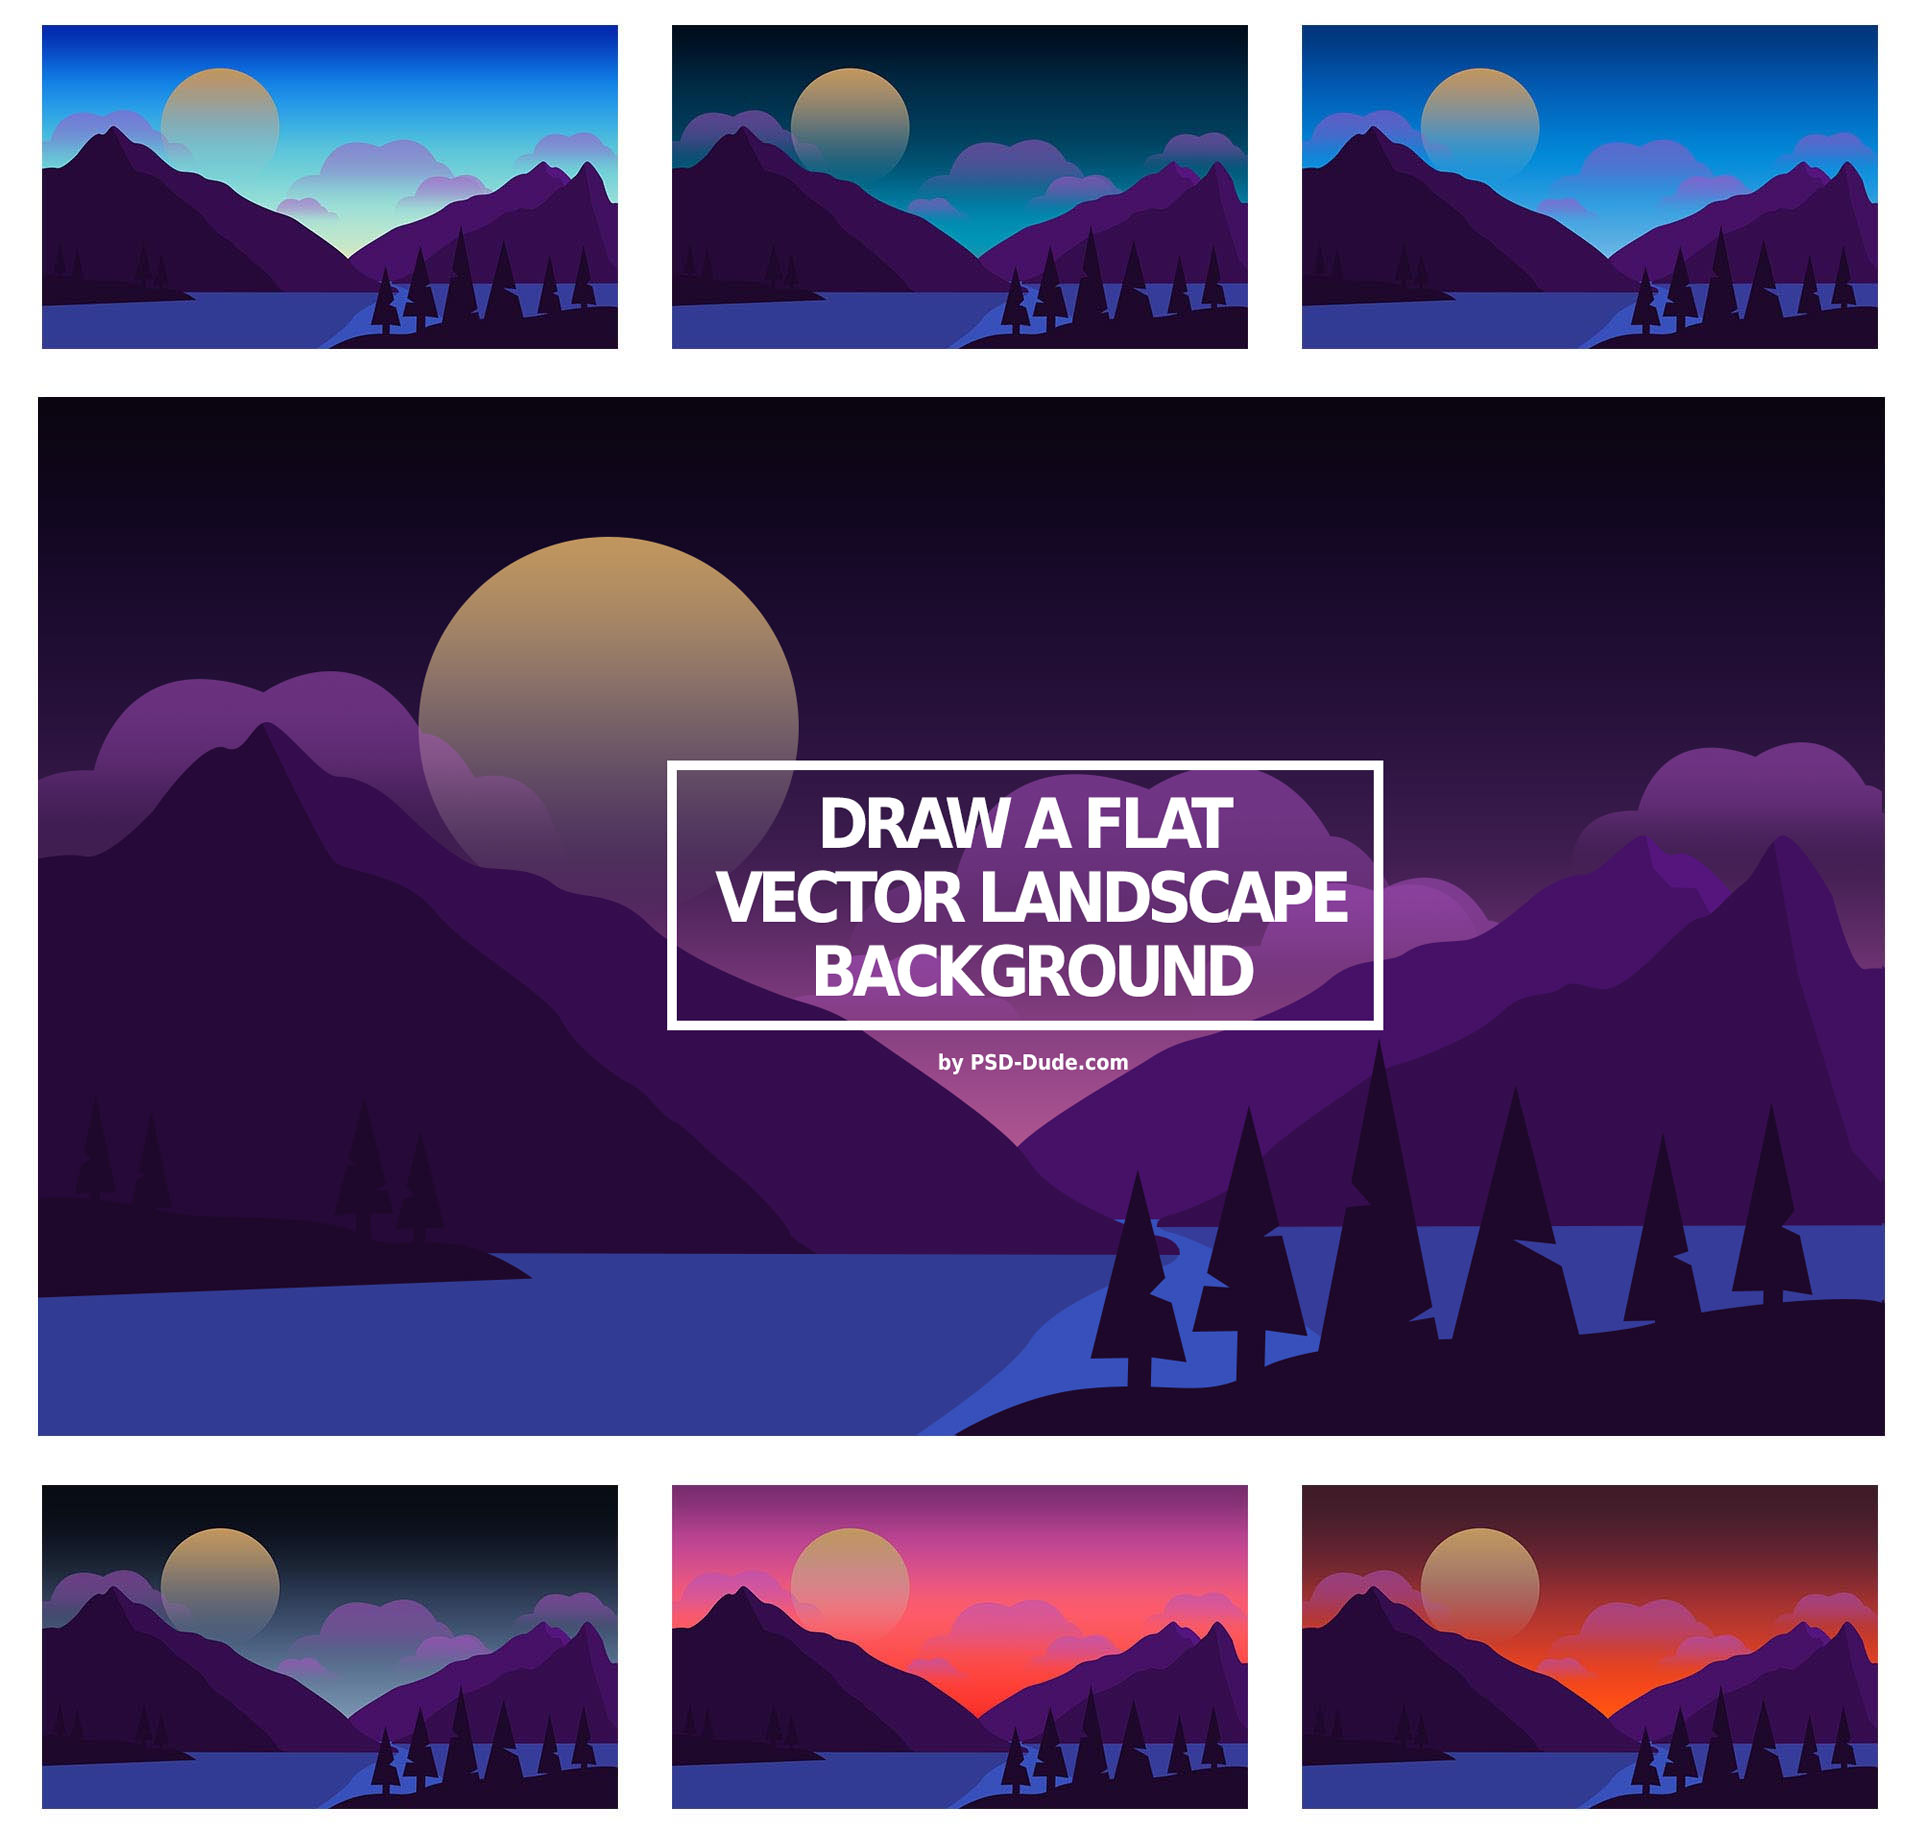 How To Draw A Flat Vector Landscape In Photoshop